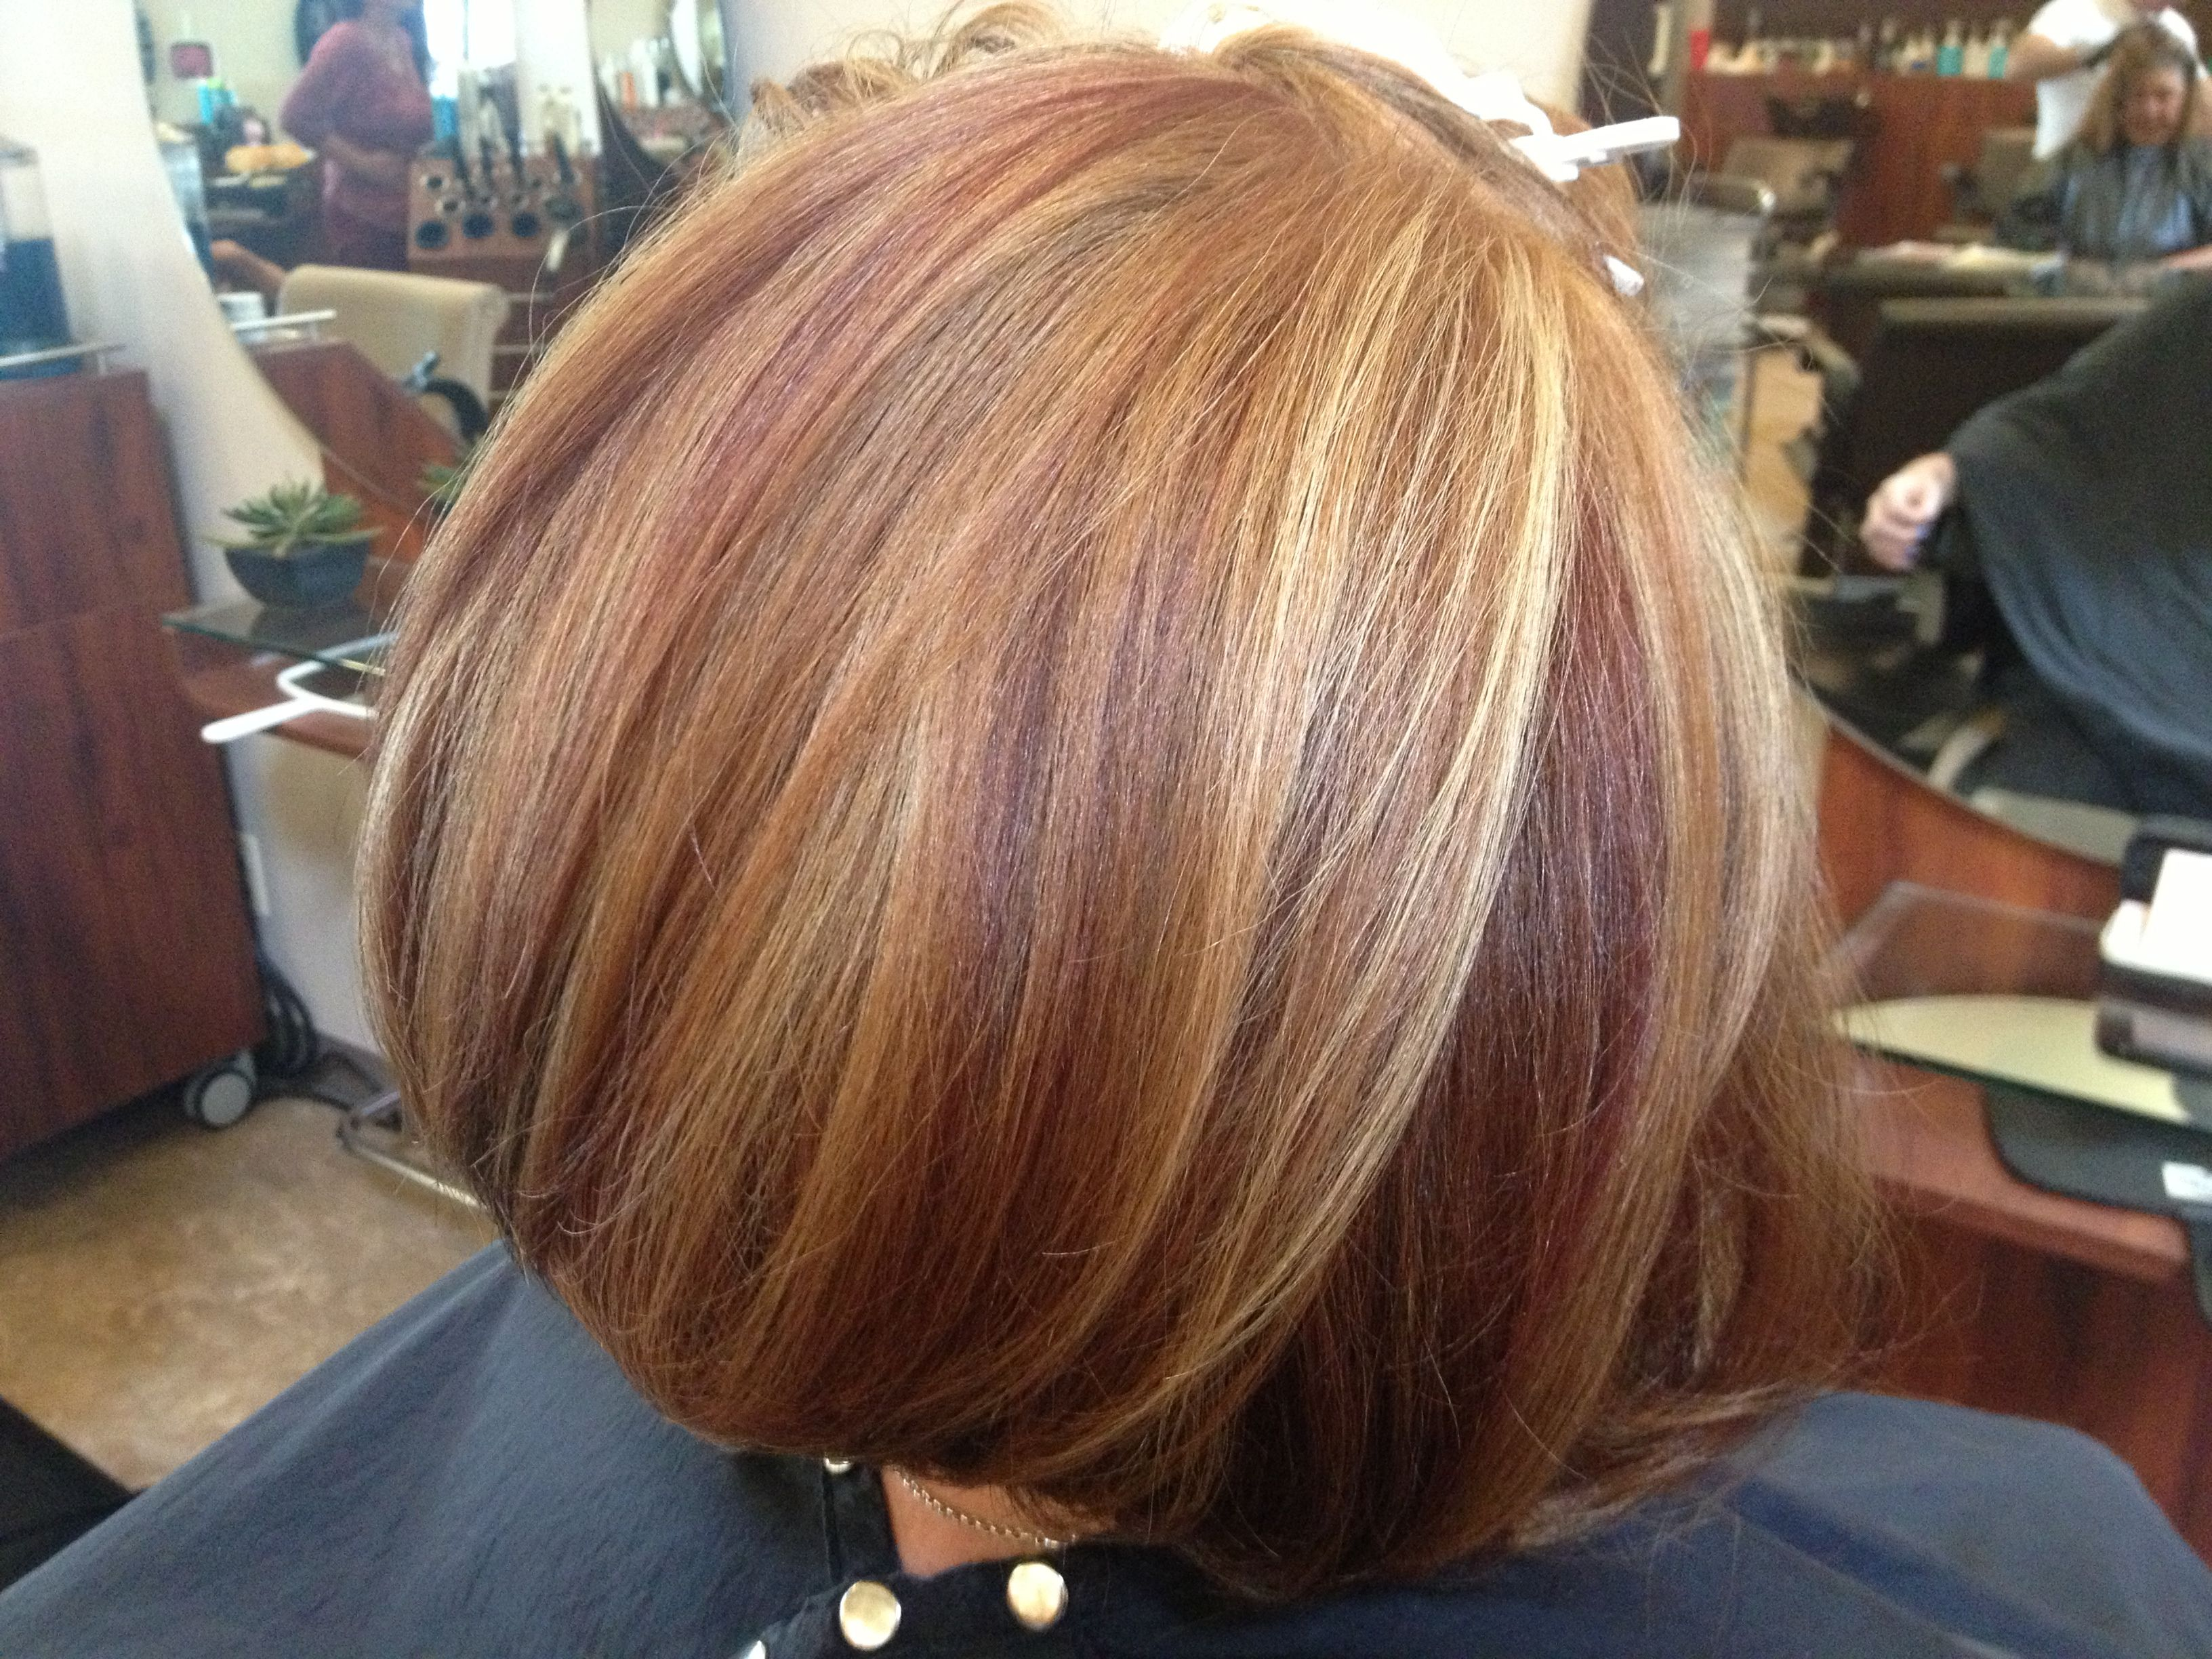 Used Artego Color Two Different Shades Of Level 5 Red